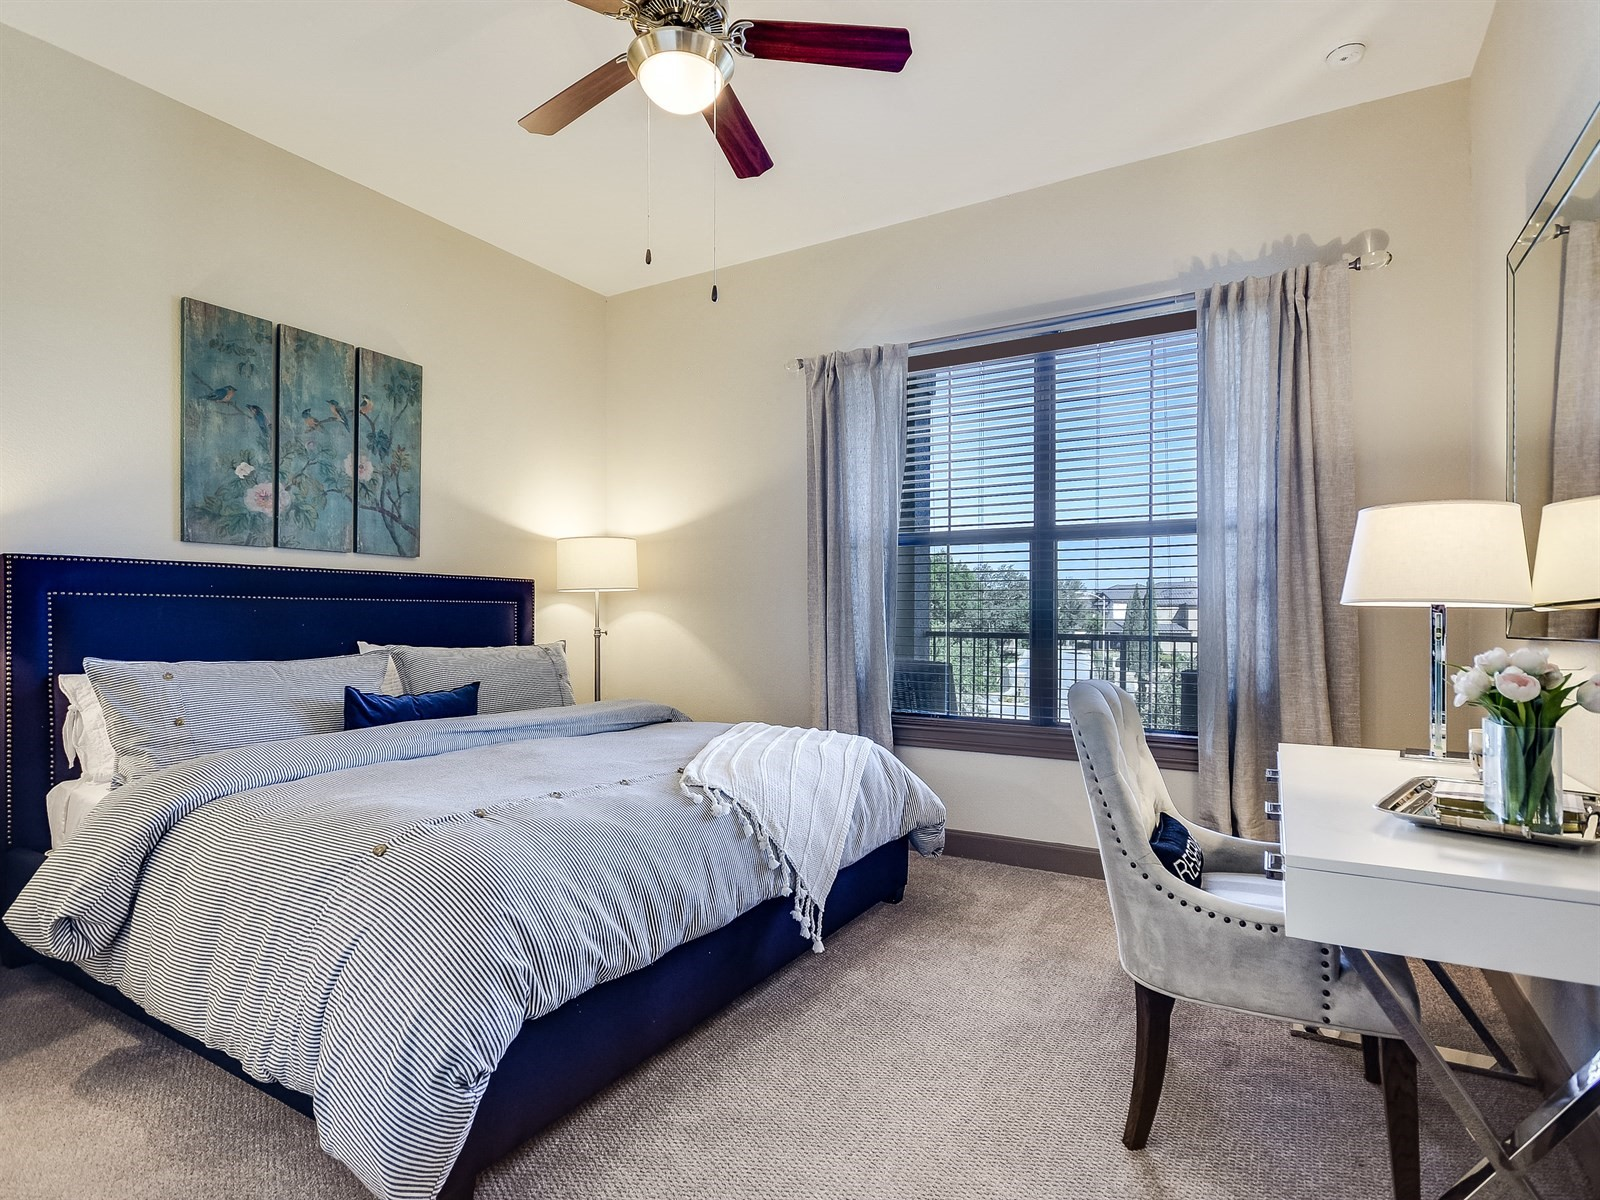 Ceiling Fans in Bedrooms at 3500 Westlake Apartments in Austin, TX